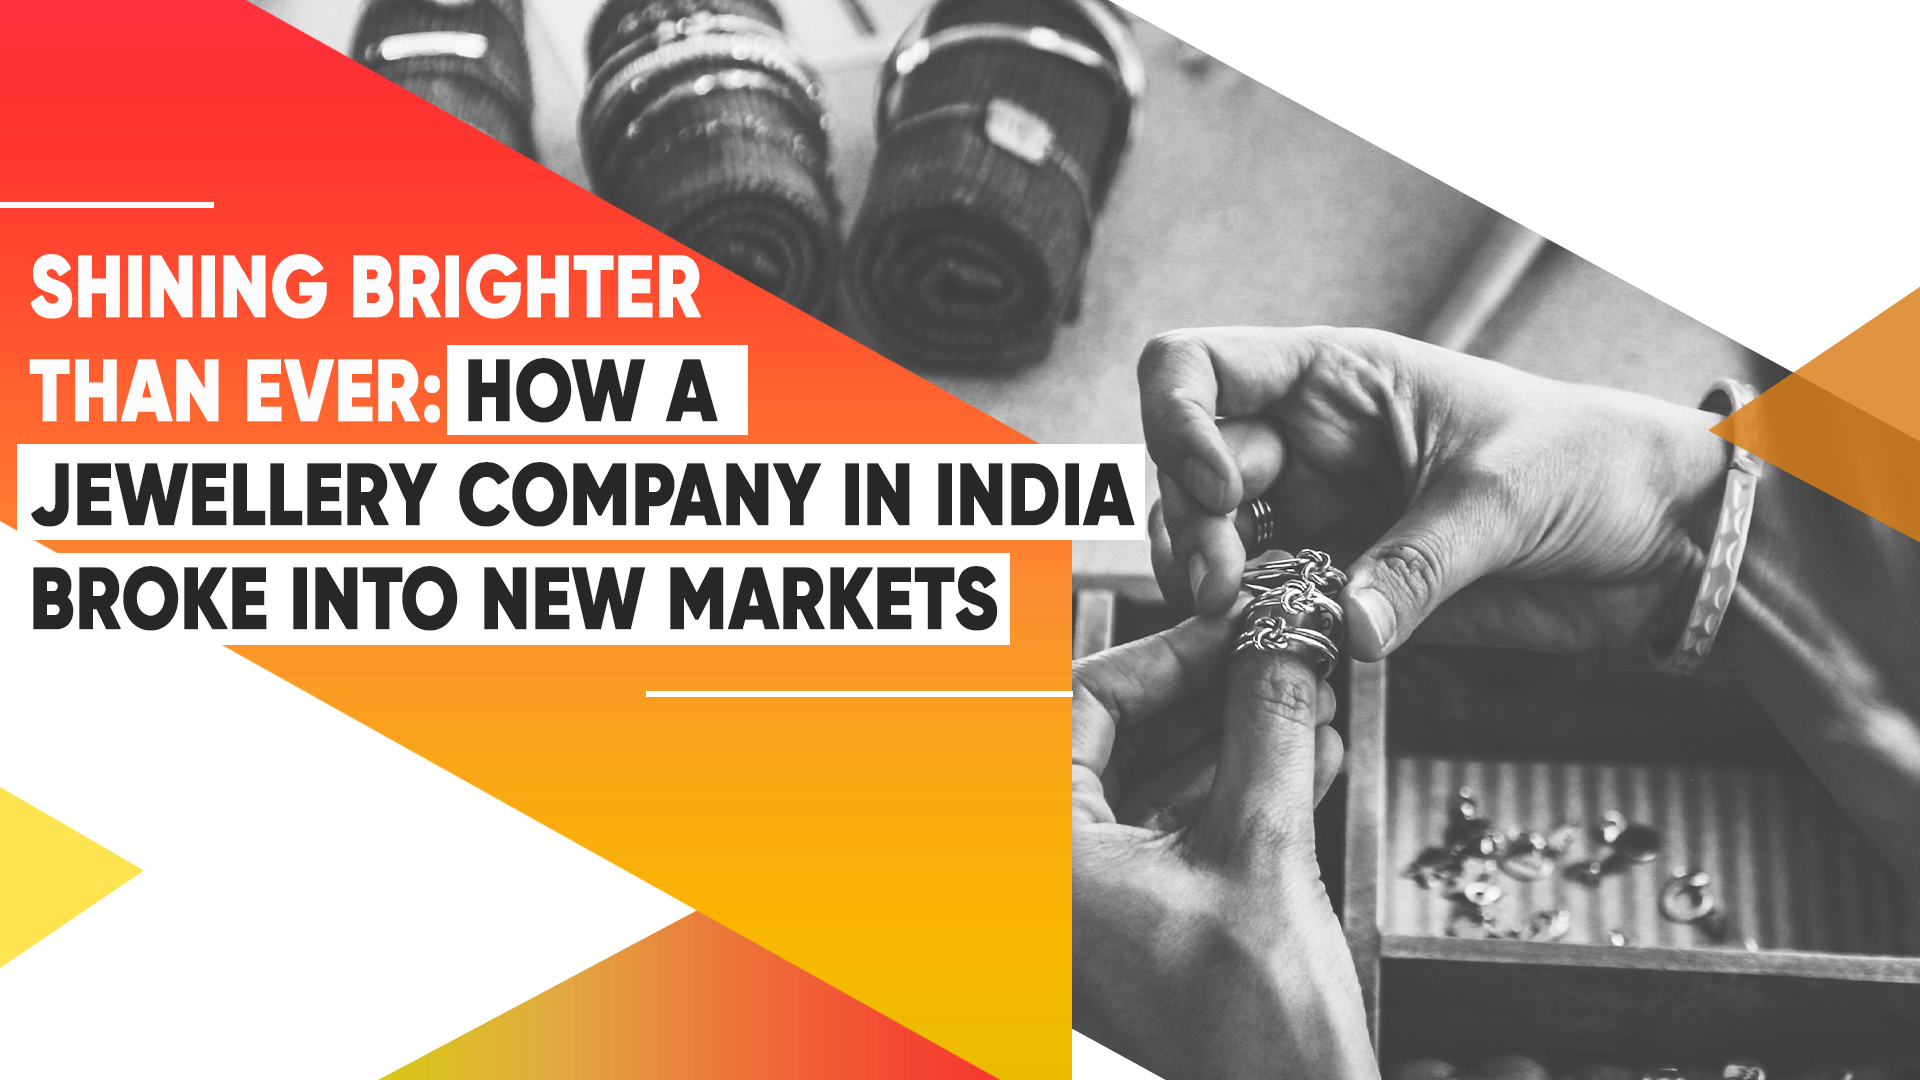 Shining Brighter Than Ever: How A Jewellery Company In India Broke Into New Markets